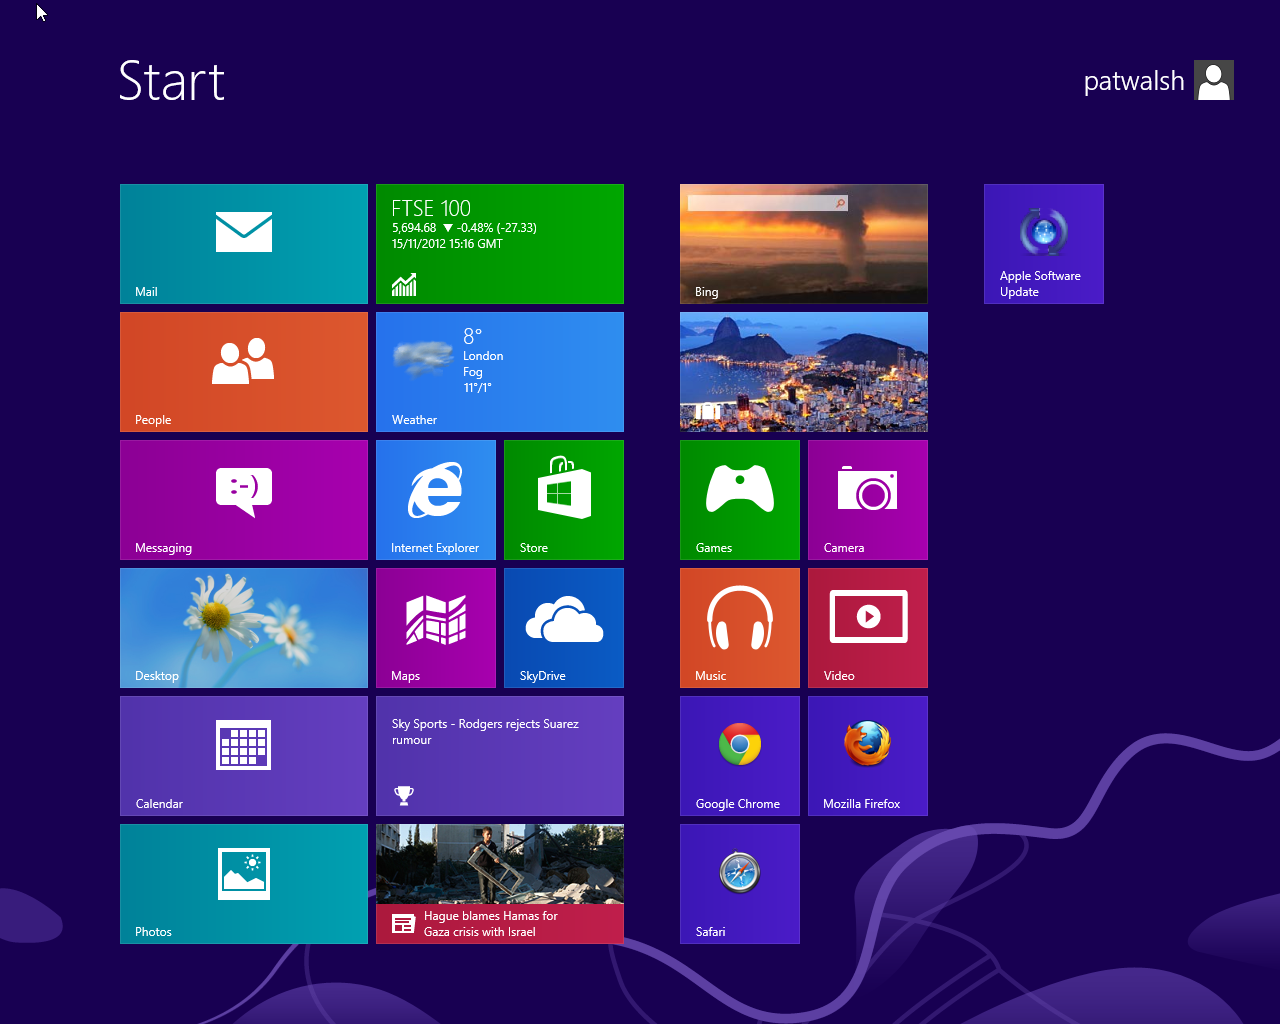 Windows 8 Start Screen showing other Browsers